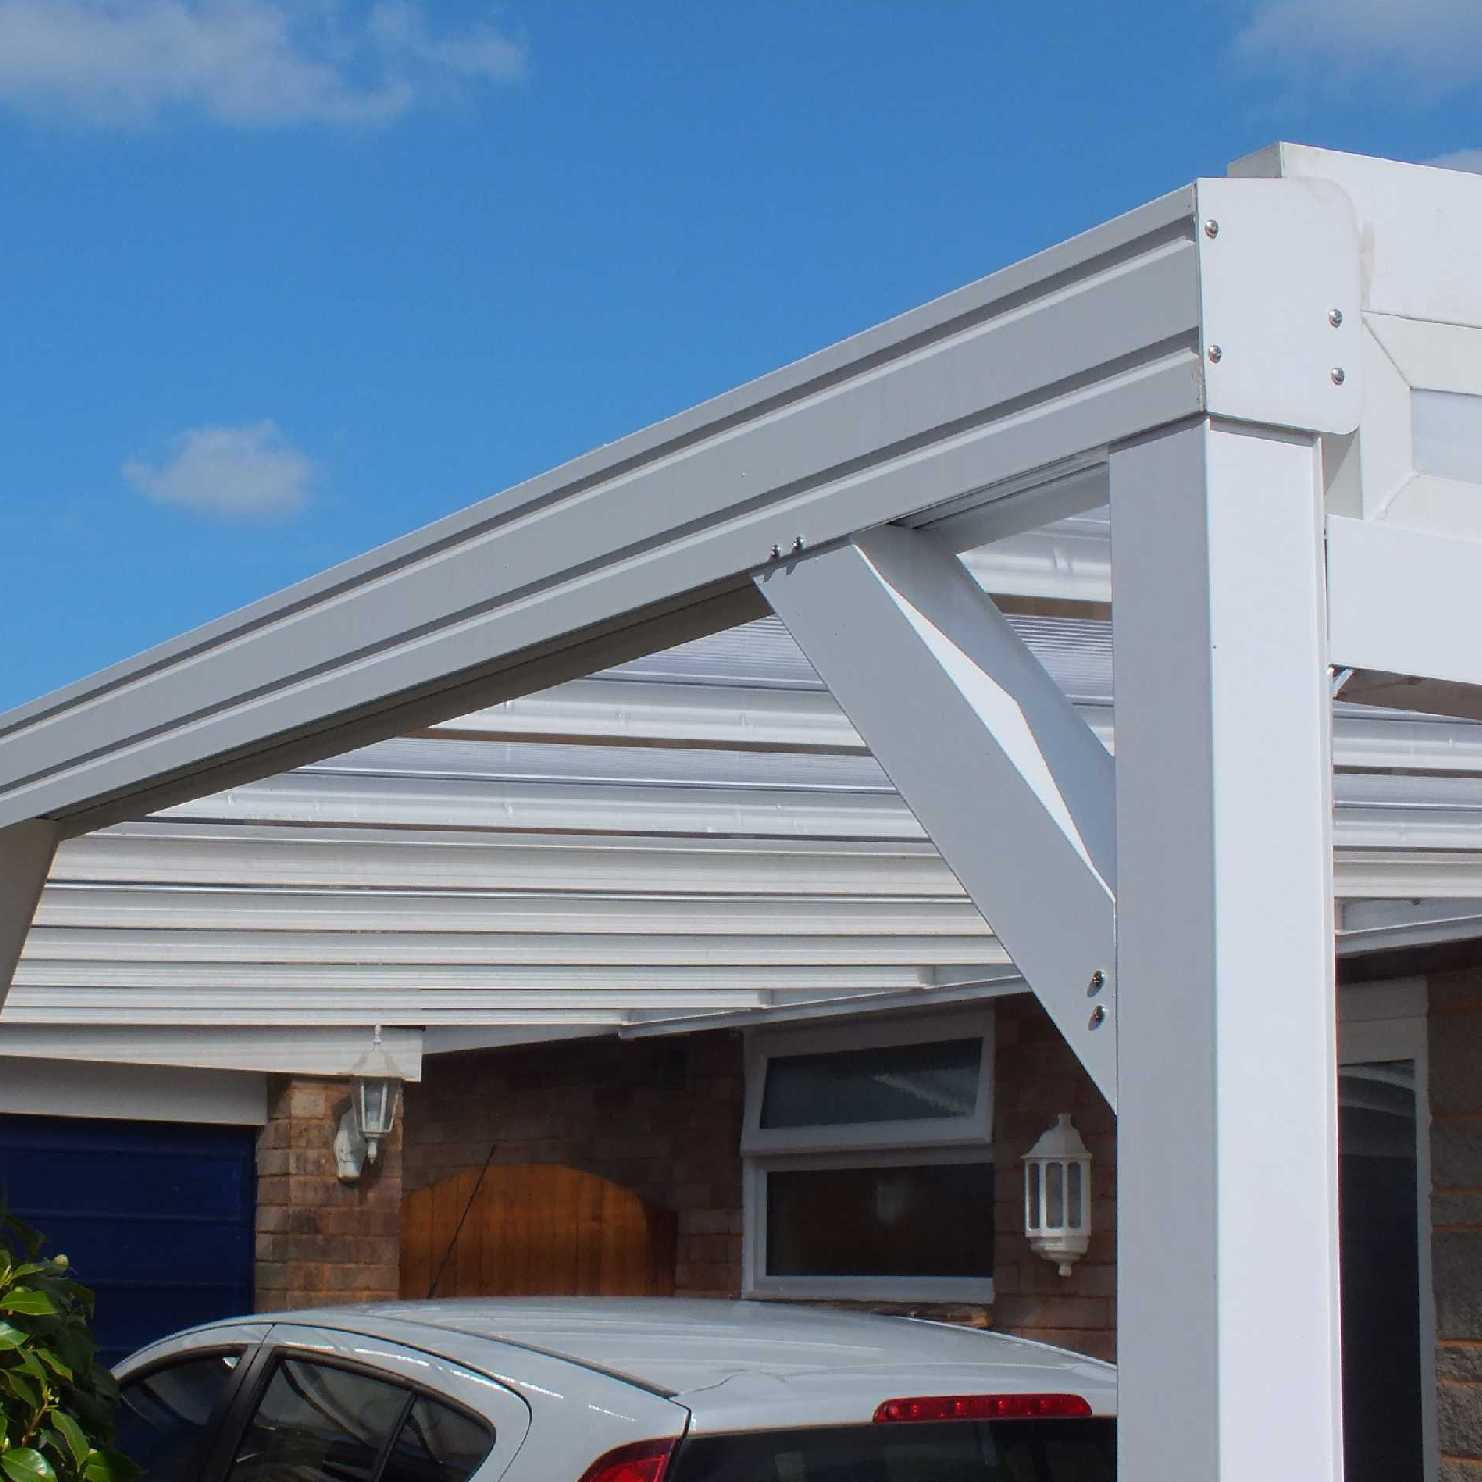 Buy Omega Smart White Lean-To Canopy with 16mm Polycarbonate Glazing - 10.2m (W) x 4.5m (P), (5) Supporting Posts online today